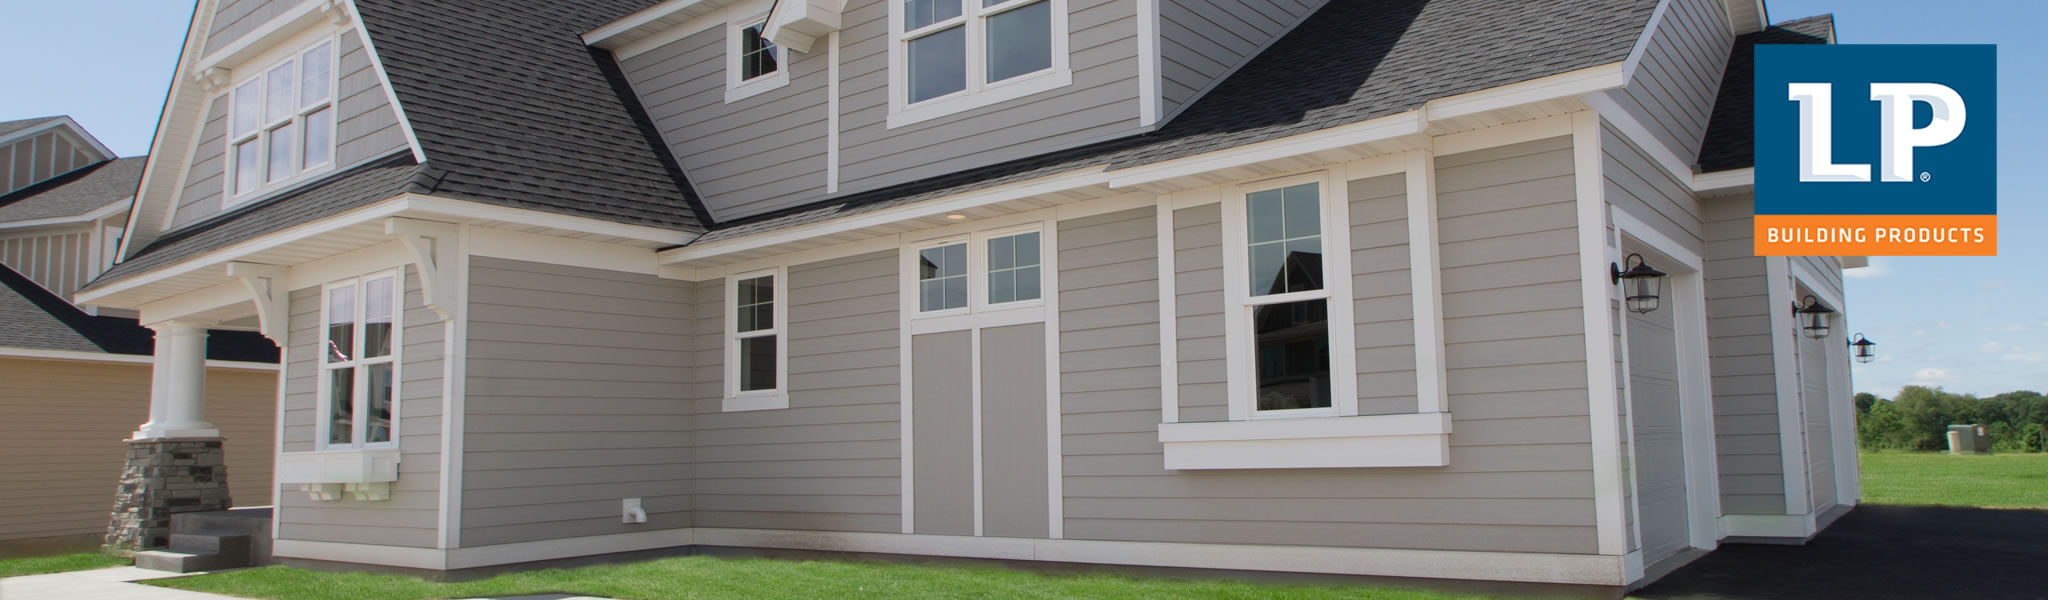 A home with our siding in Waynesville, MO